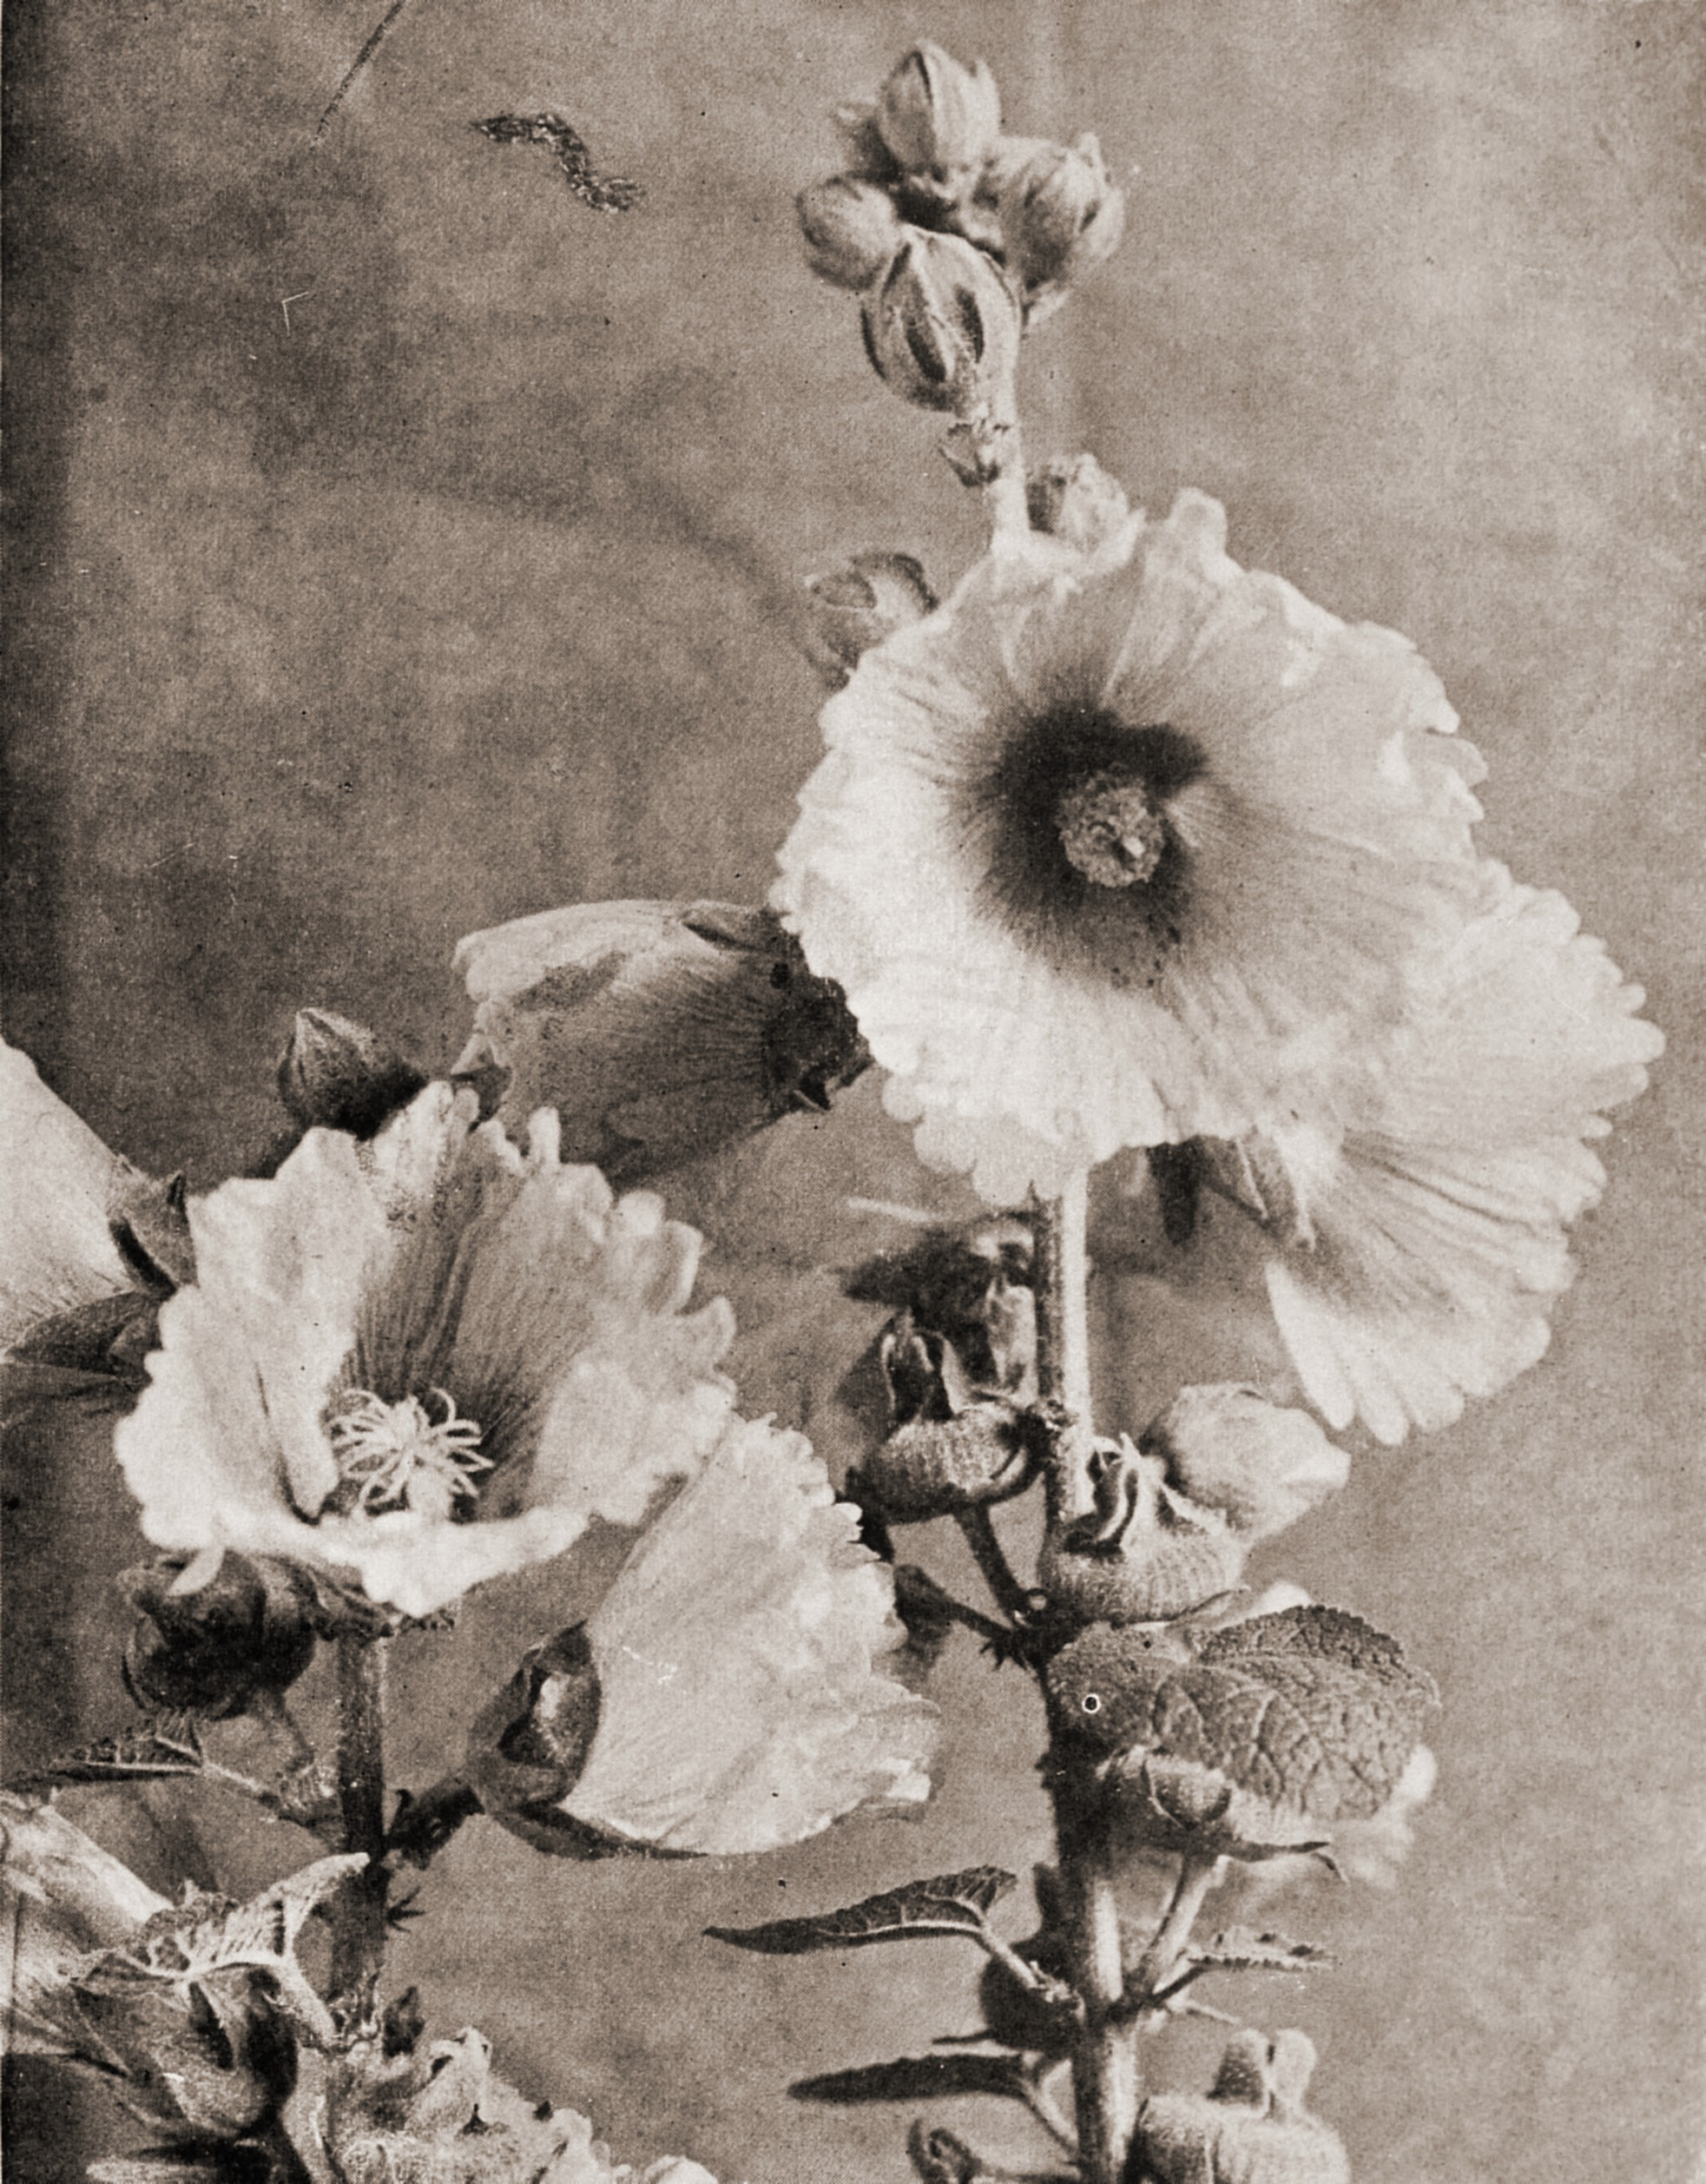 A White Hollyhock by R. W. Shufeldt about 1923